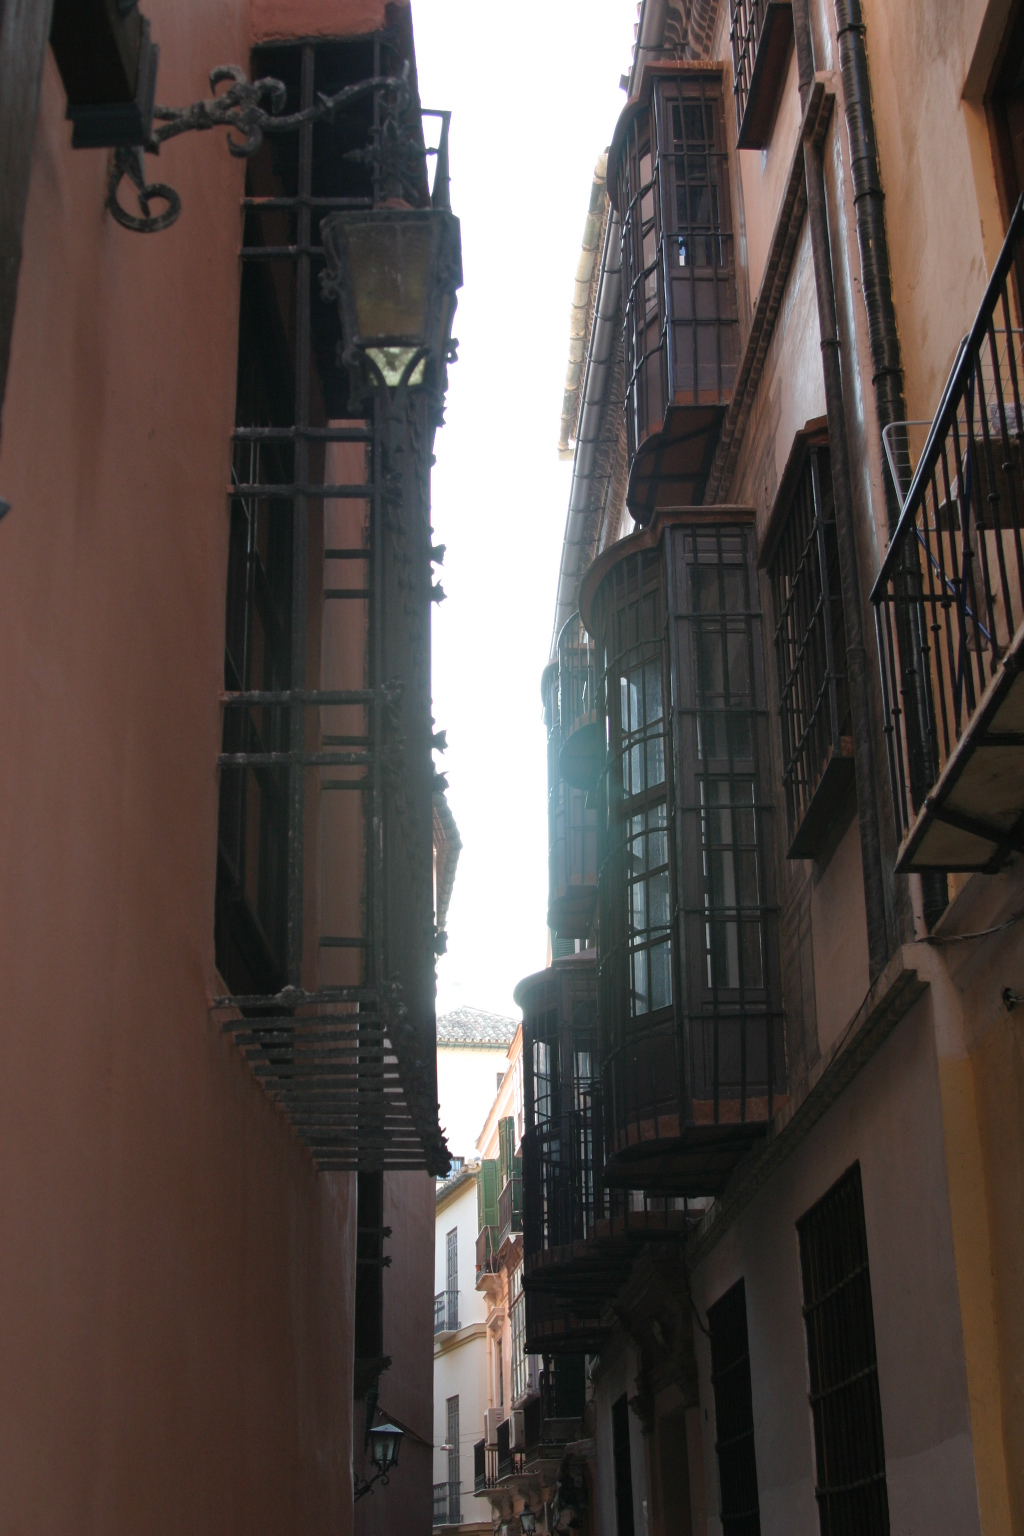 Old town malaga www.andrewforbes.com (1)